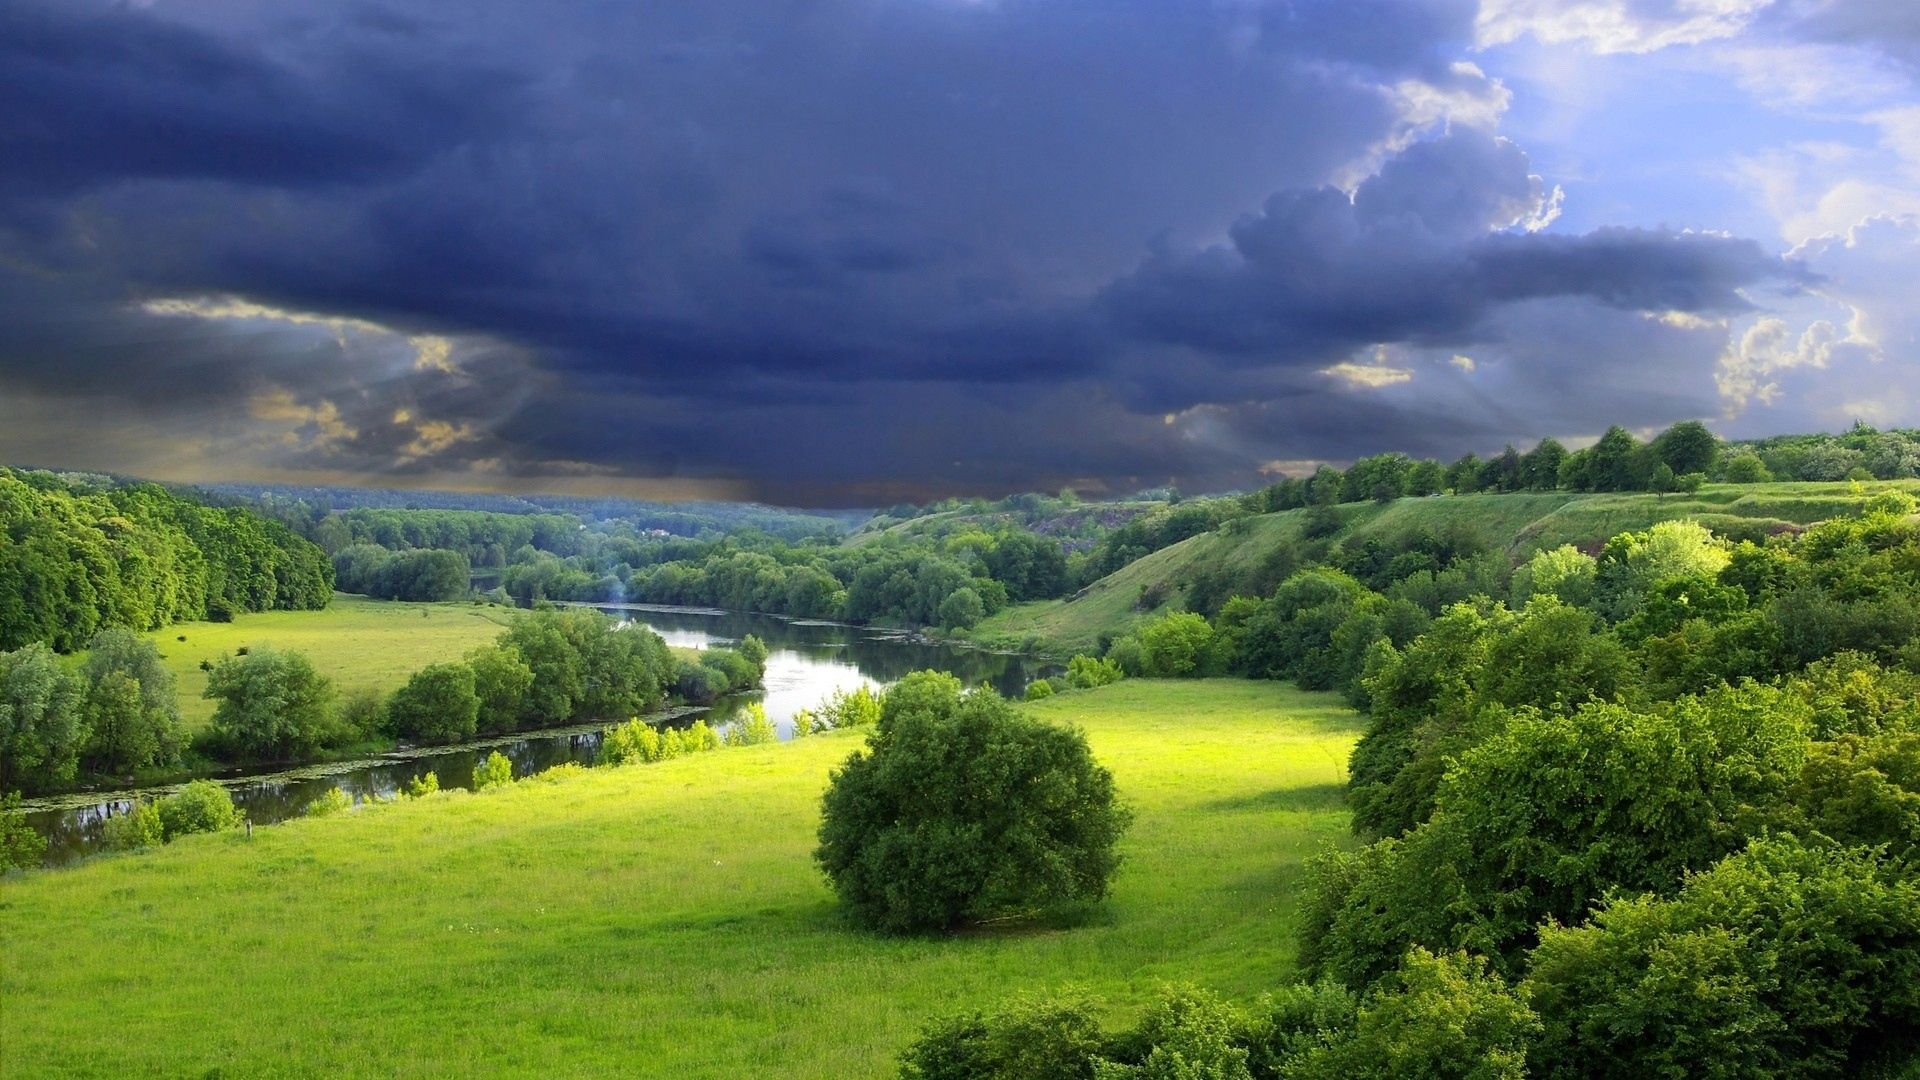 Most Beautiful Nature Wallpapers Hd Pictures Onehdwallpapers Hd